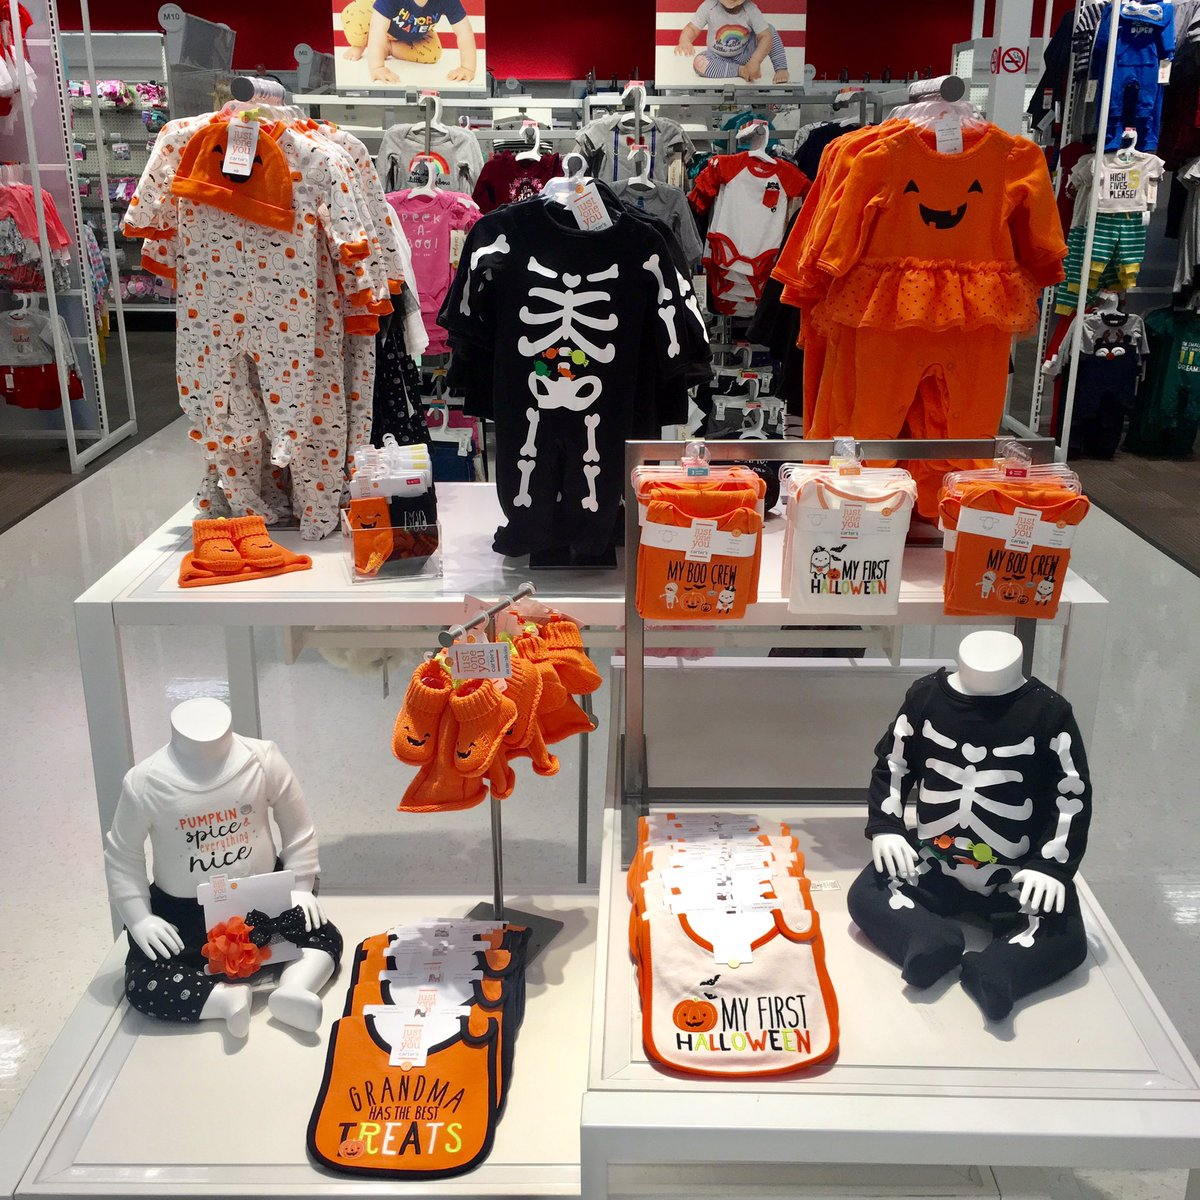 Our mannequins are ready for Halloween, are you?  #T1771 #Target @TargetStyle<br>http://pic.twitter.com/gValjAFlbY